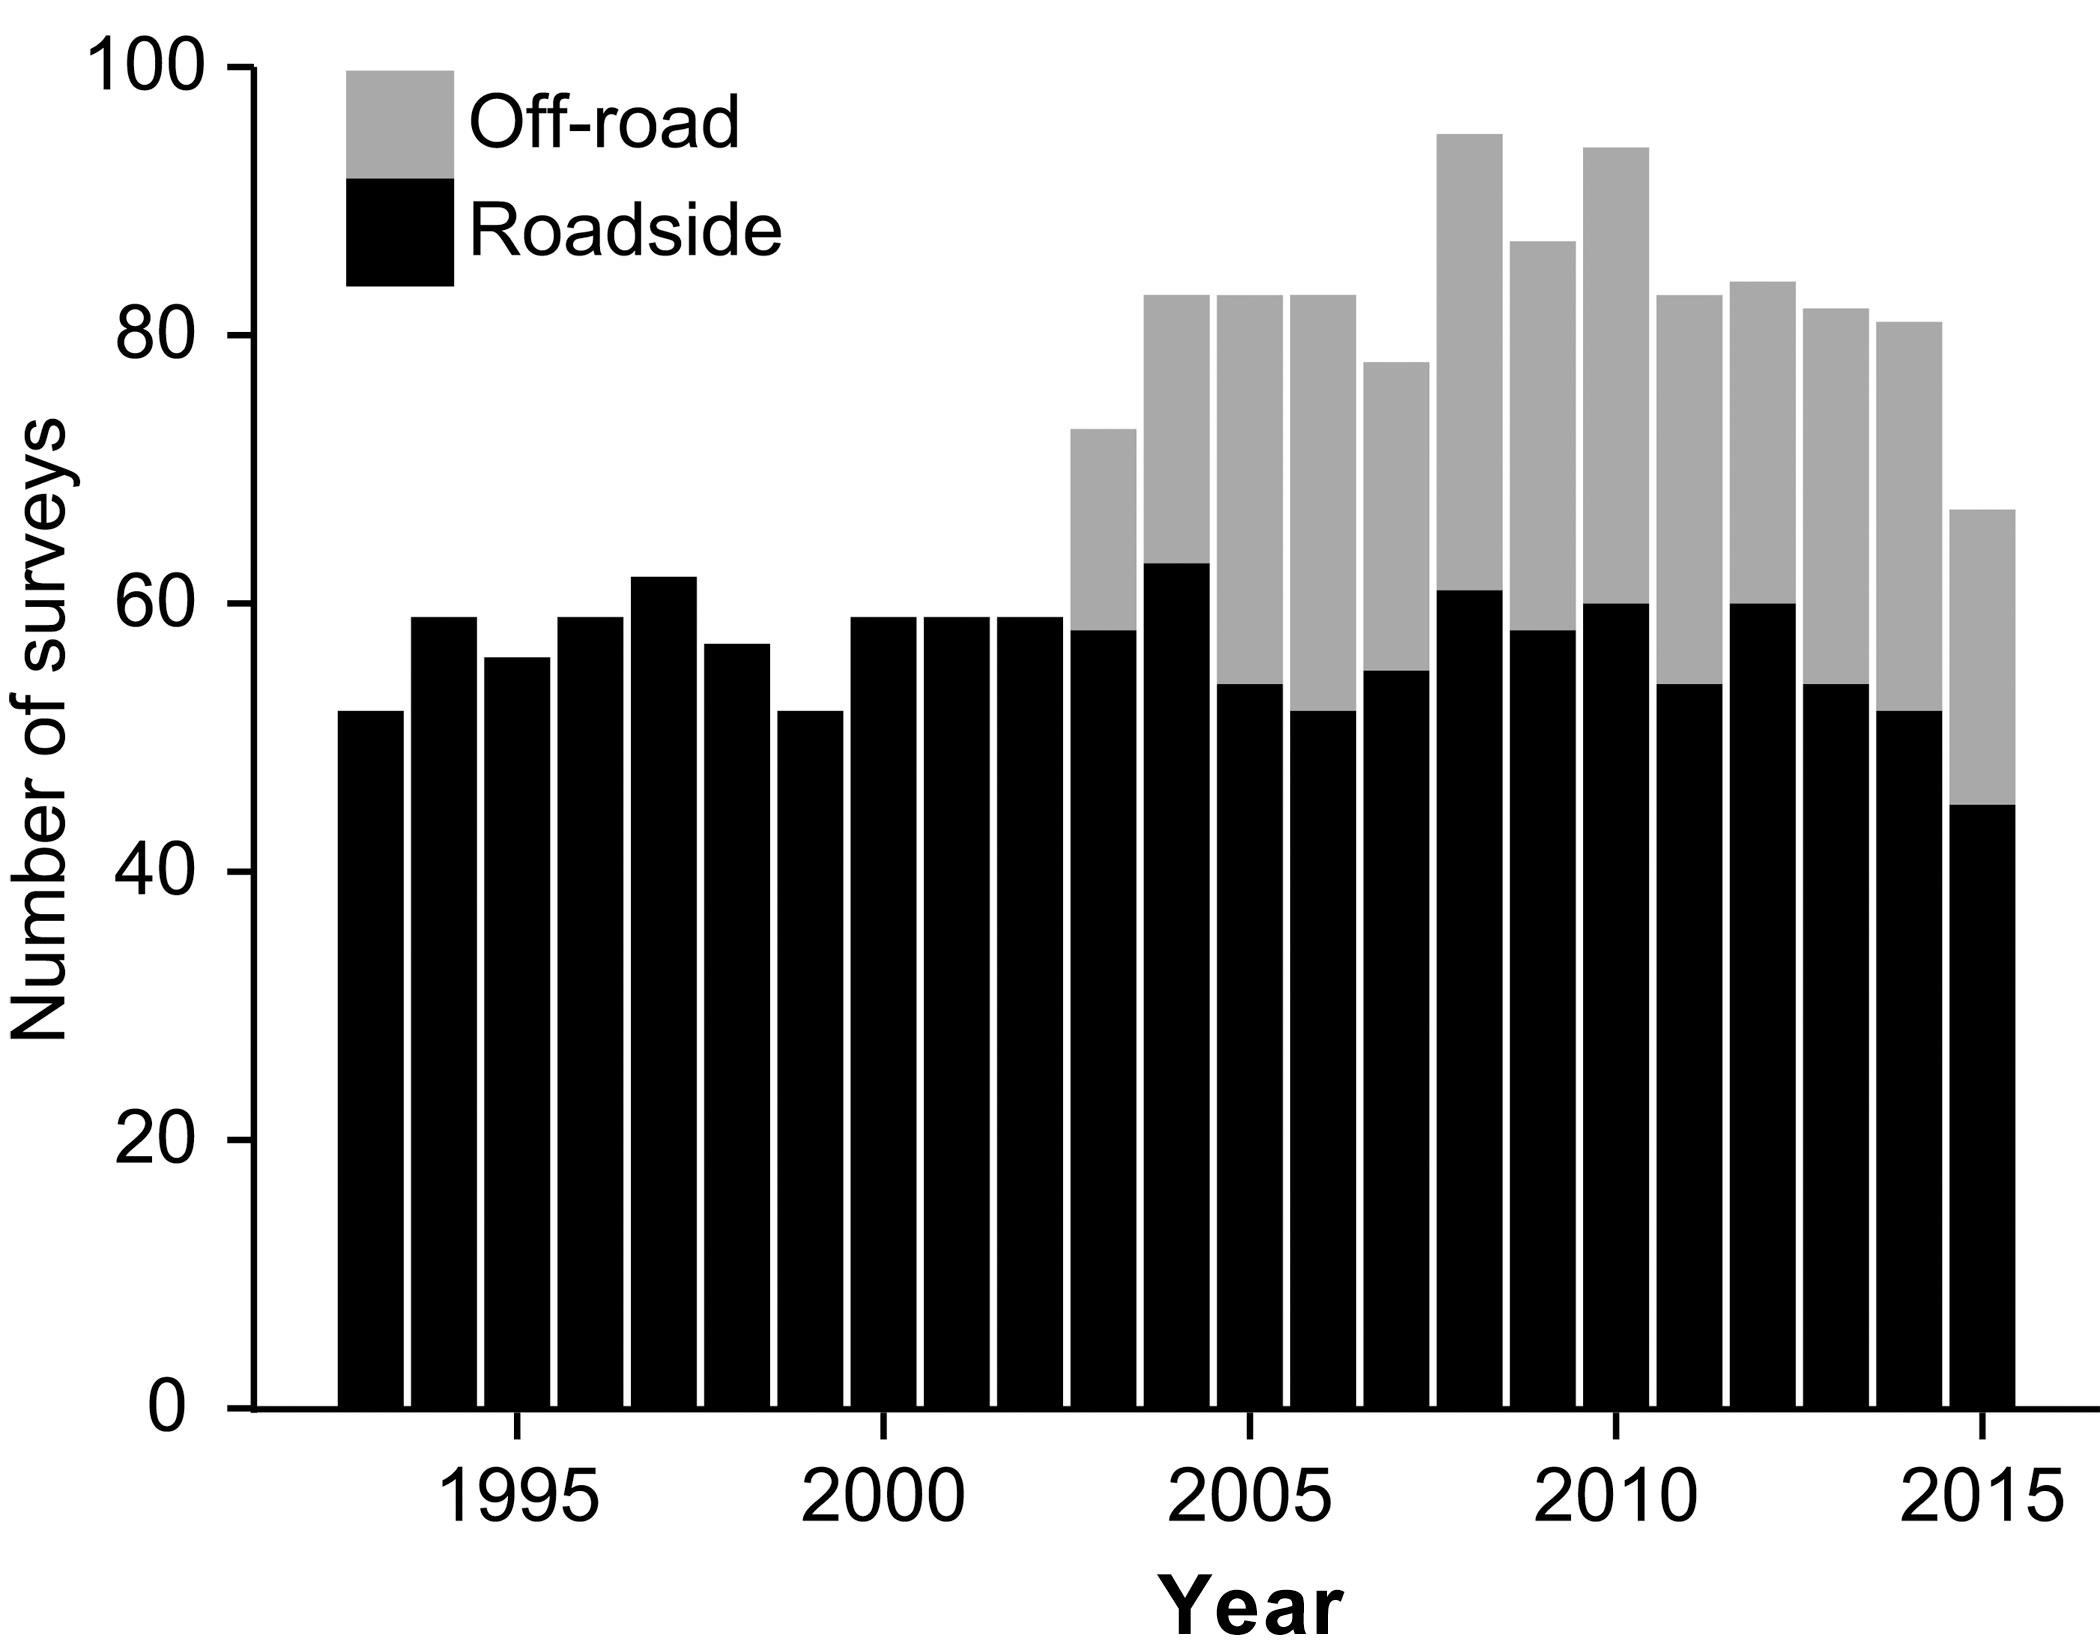 Combined analysis of roadside and off-road breeding bird